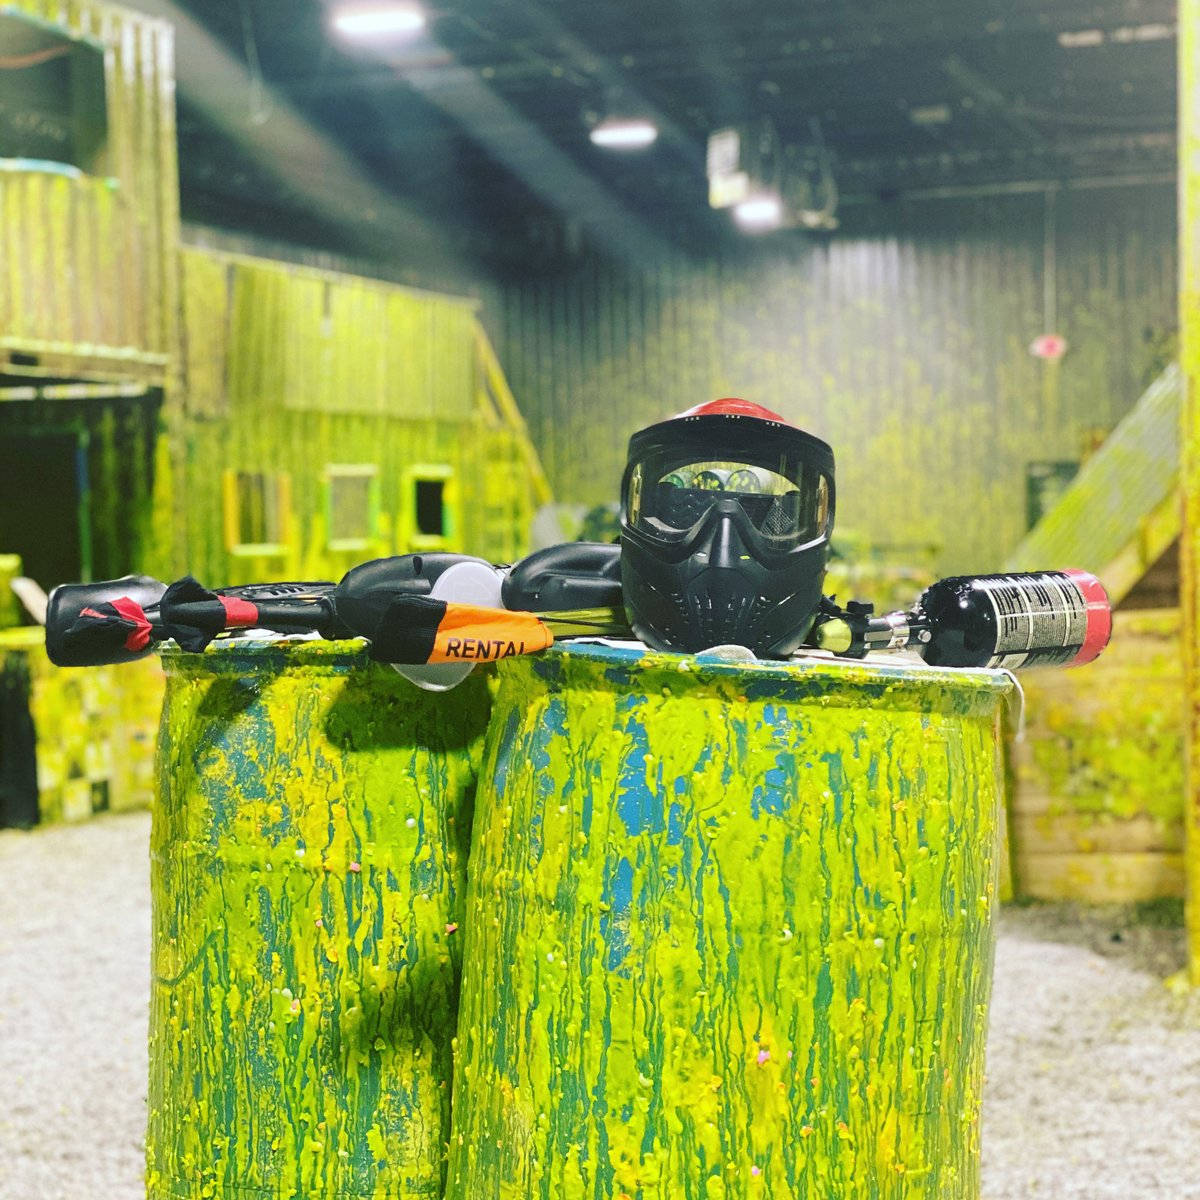 #paintball #paintballislife #playinside #fullthrottleadrenalinepark #cincinnati #checkoutourpaintballfield 😍🙌 https://t.co/KRi8h0aVPU